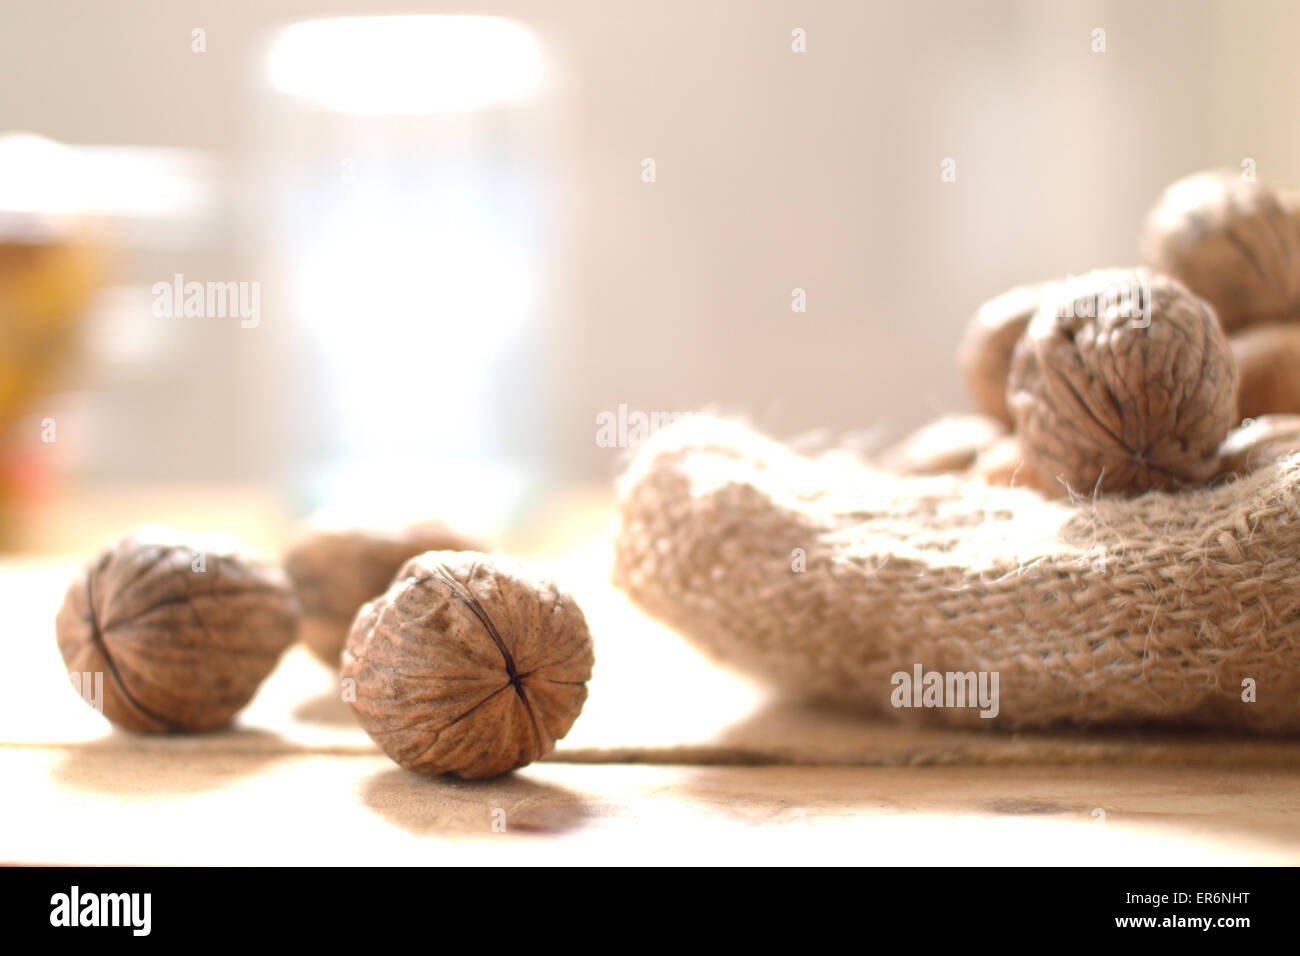 Some walnuts scattered on a sack on a rustic wooden kitchen. - Stock Image